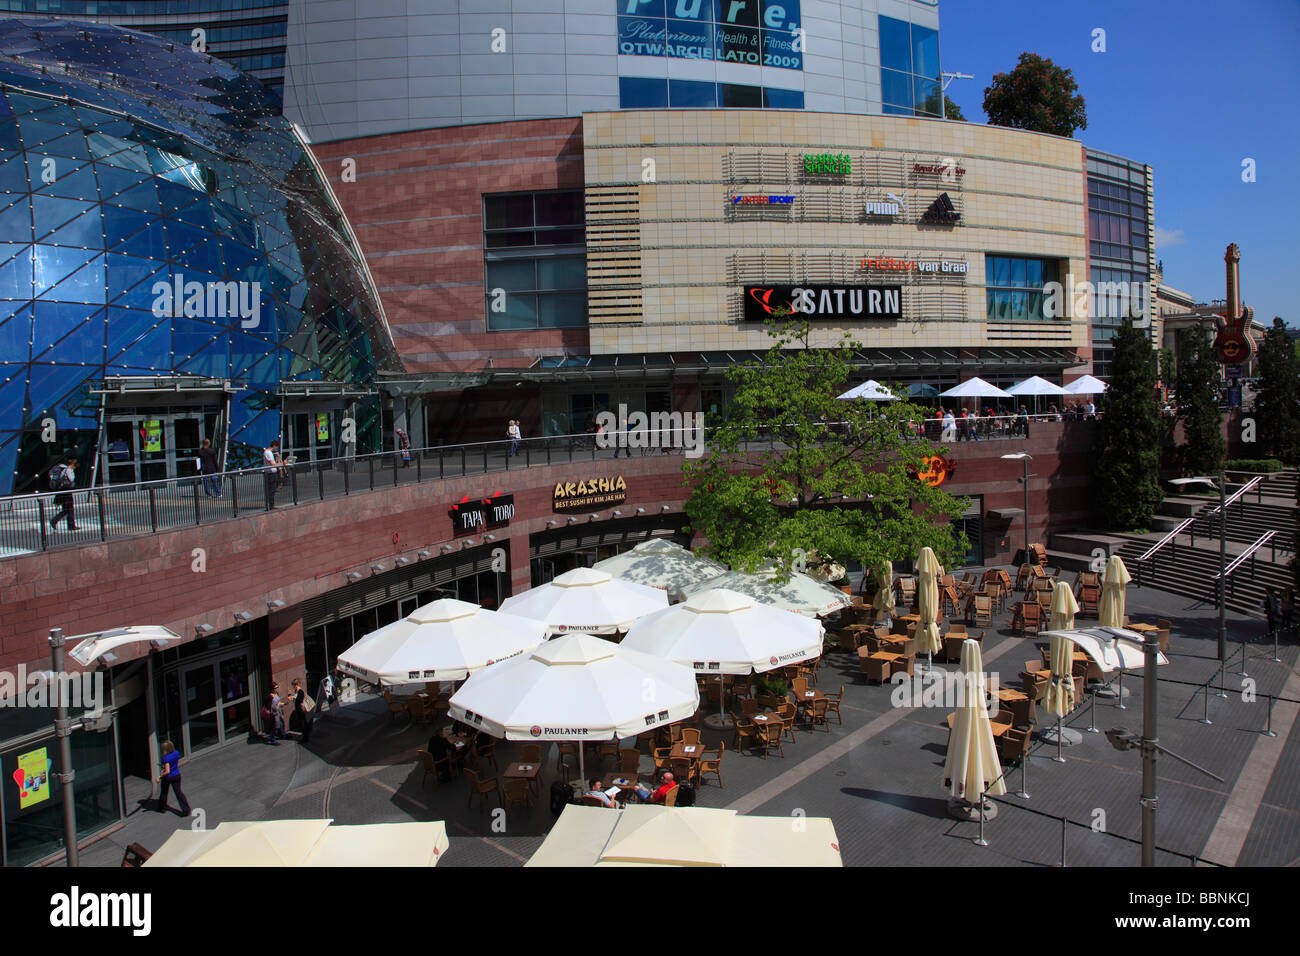 Poland Warsaw downtown shopping and leisure complex - Stock Image